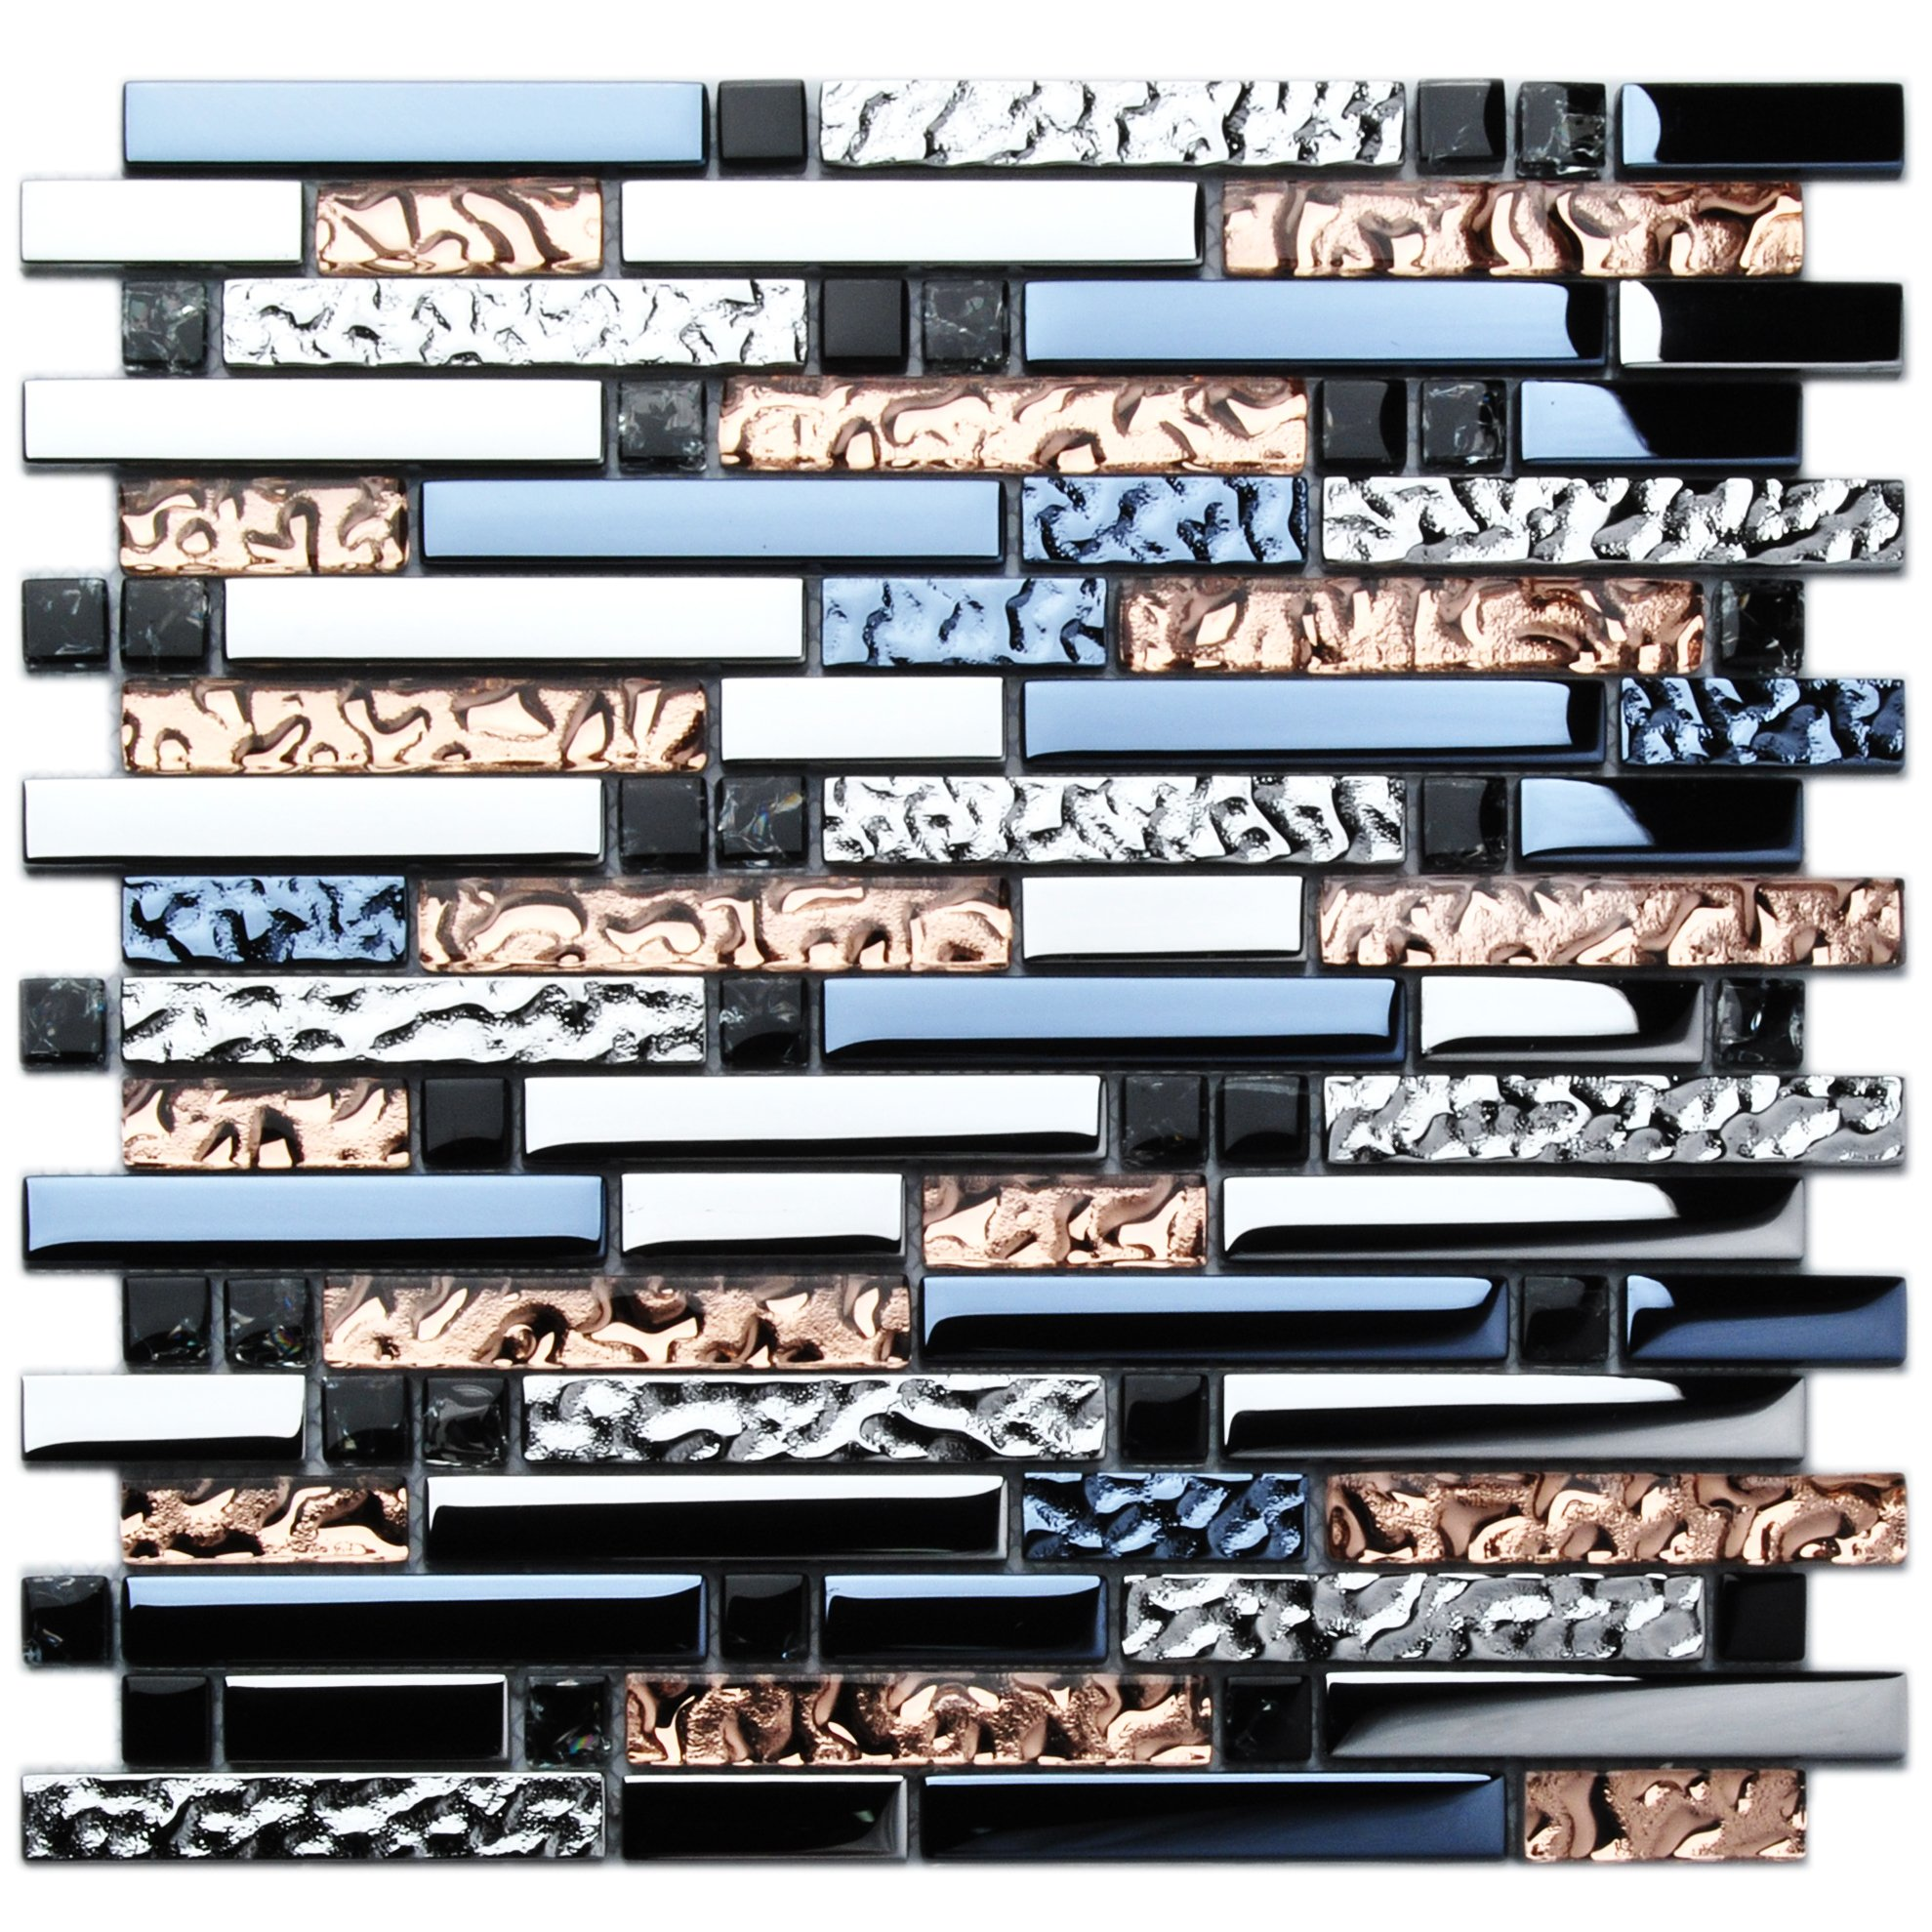 TST Mosaic Tiles Crystal Glass Tile Interlocking Black Brown Mosaic Bath Kitchen Fireplace Decor TSTGT107 (5 PCS [12'' X 12''/Each])